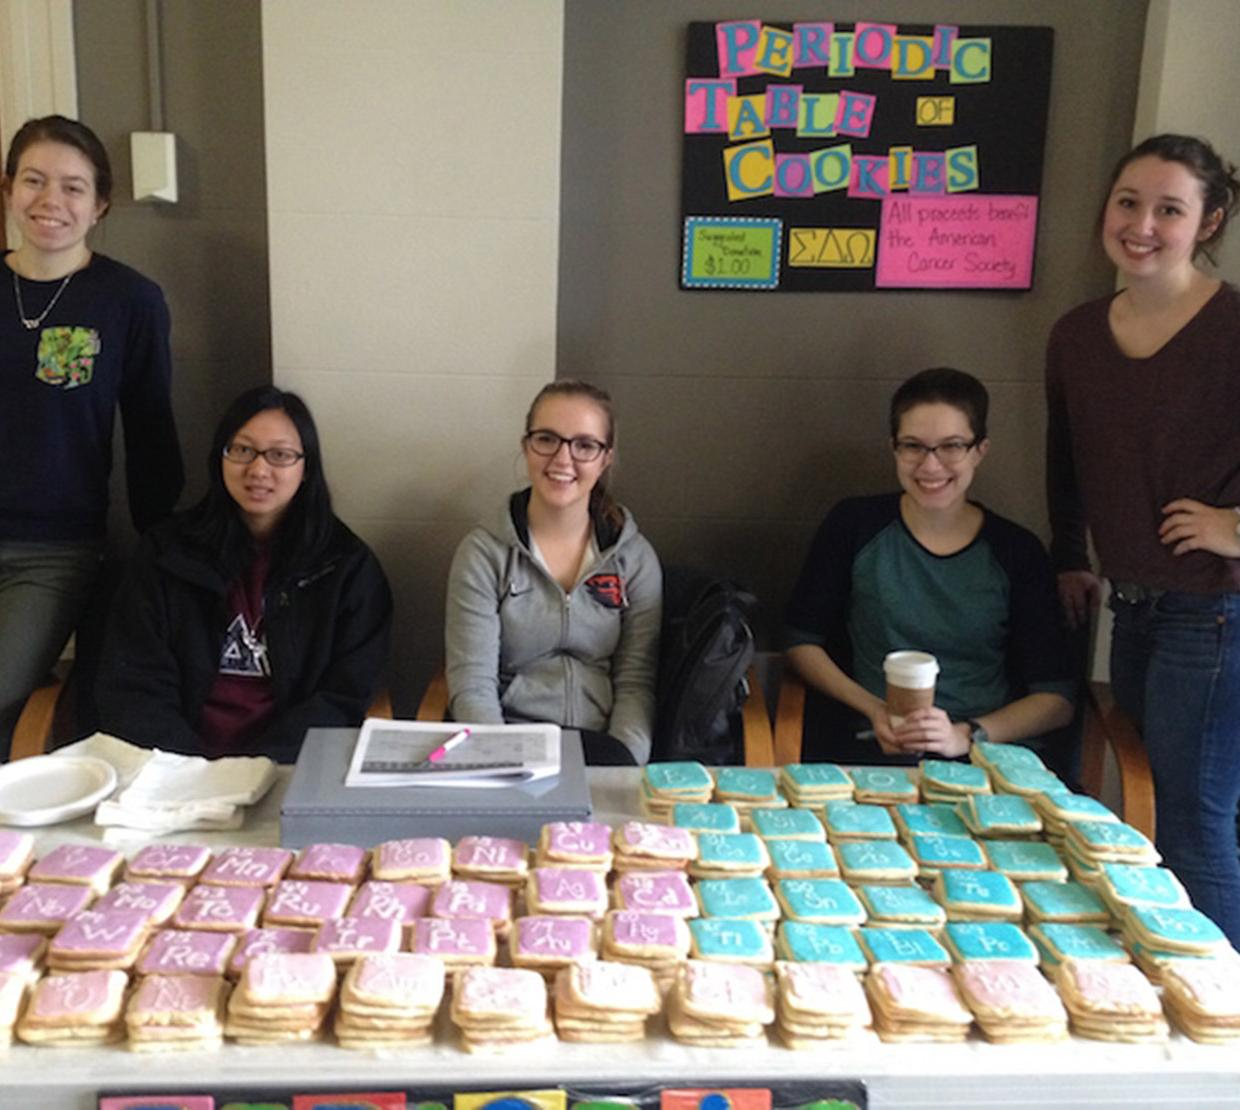 Sigma delta omega students selling cookies in Kidder